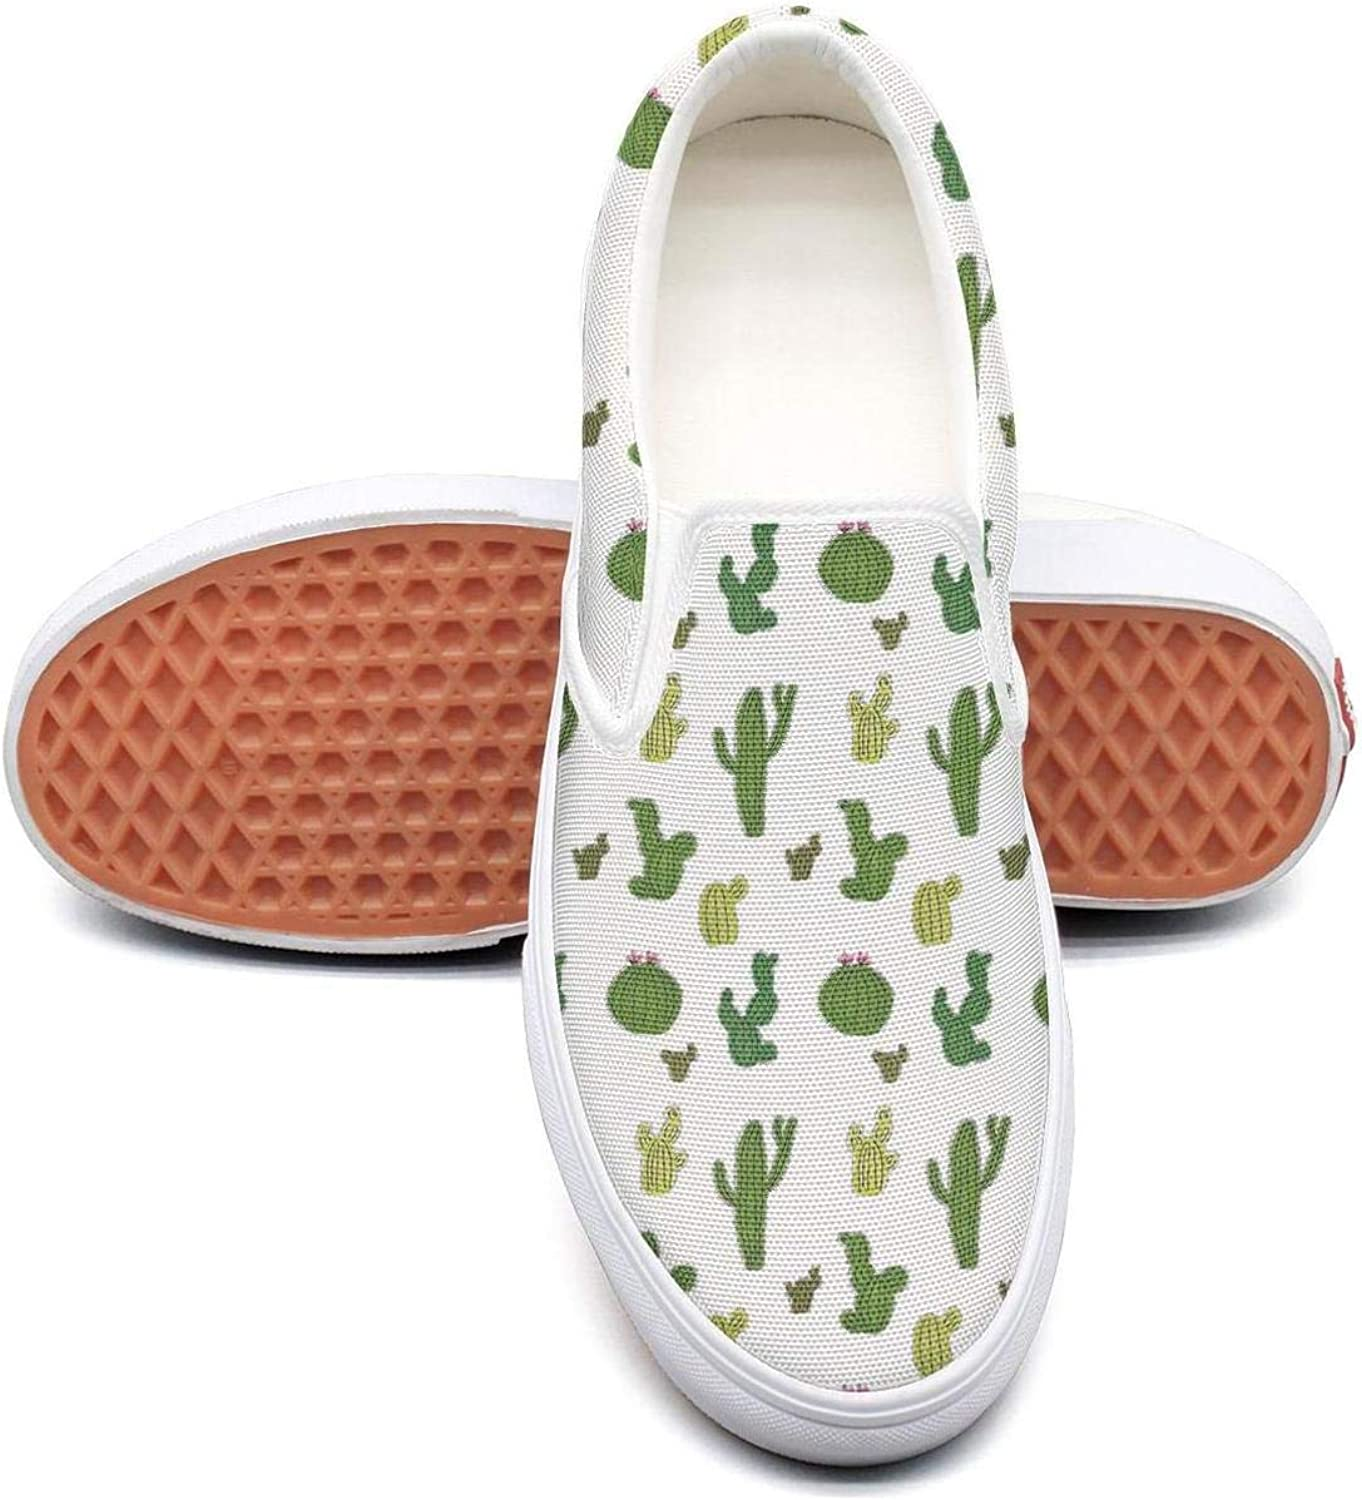 Sernfinjdr Women's Cactus Green Blossom Prints Fashion Casual Canvas Slip on shoes Original Cycling Sneaker shoes